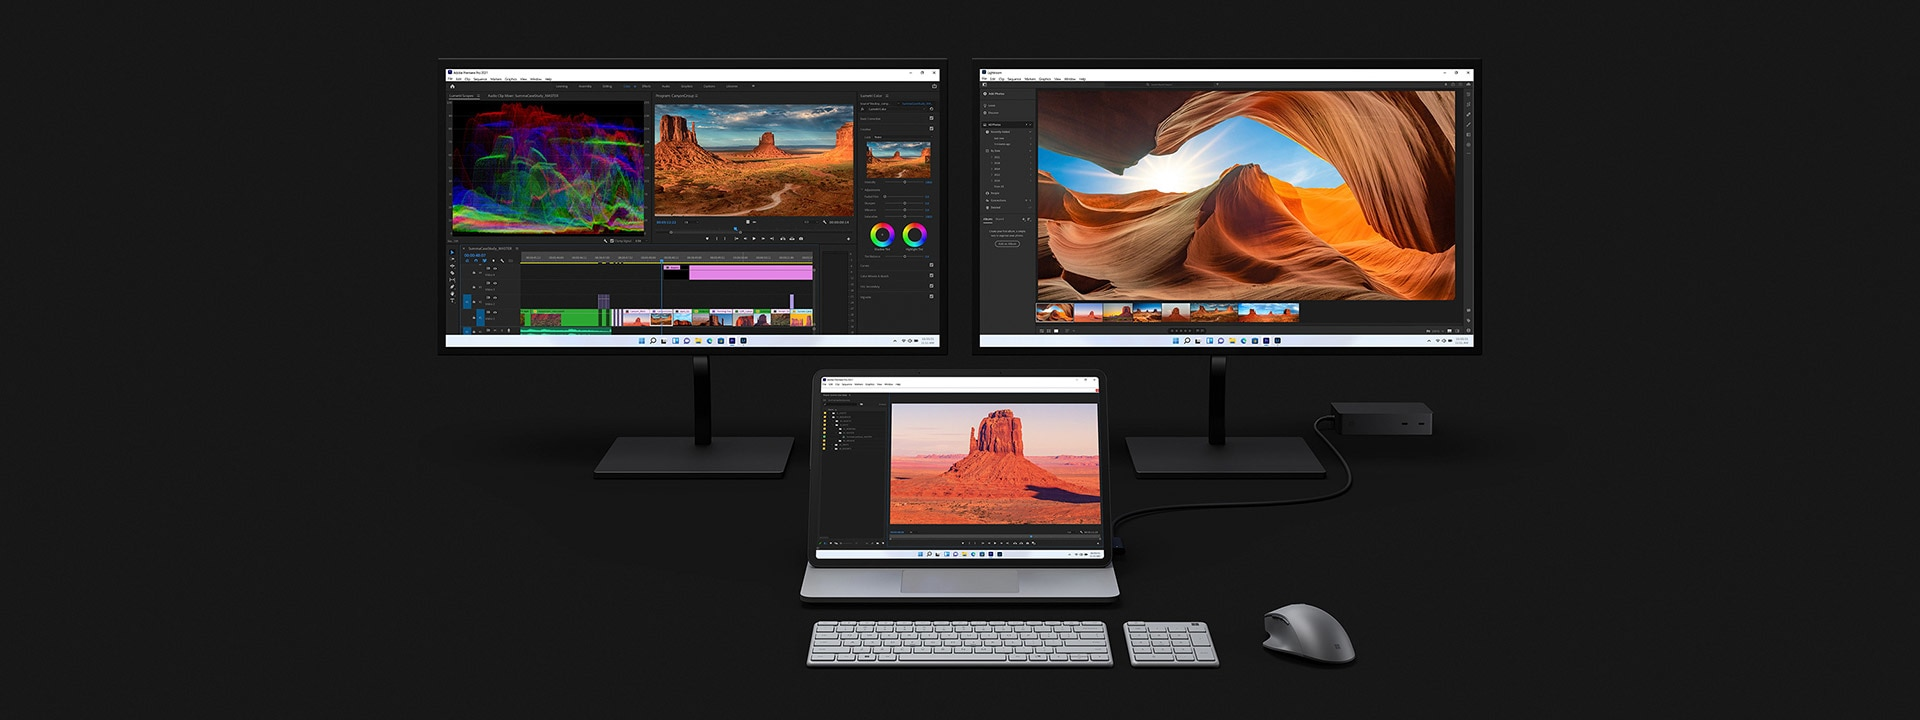 Surface Laptop Studio docked to two larger monitors being used to edit video.